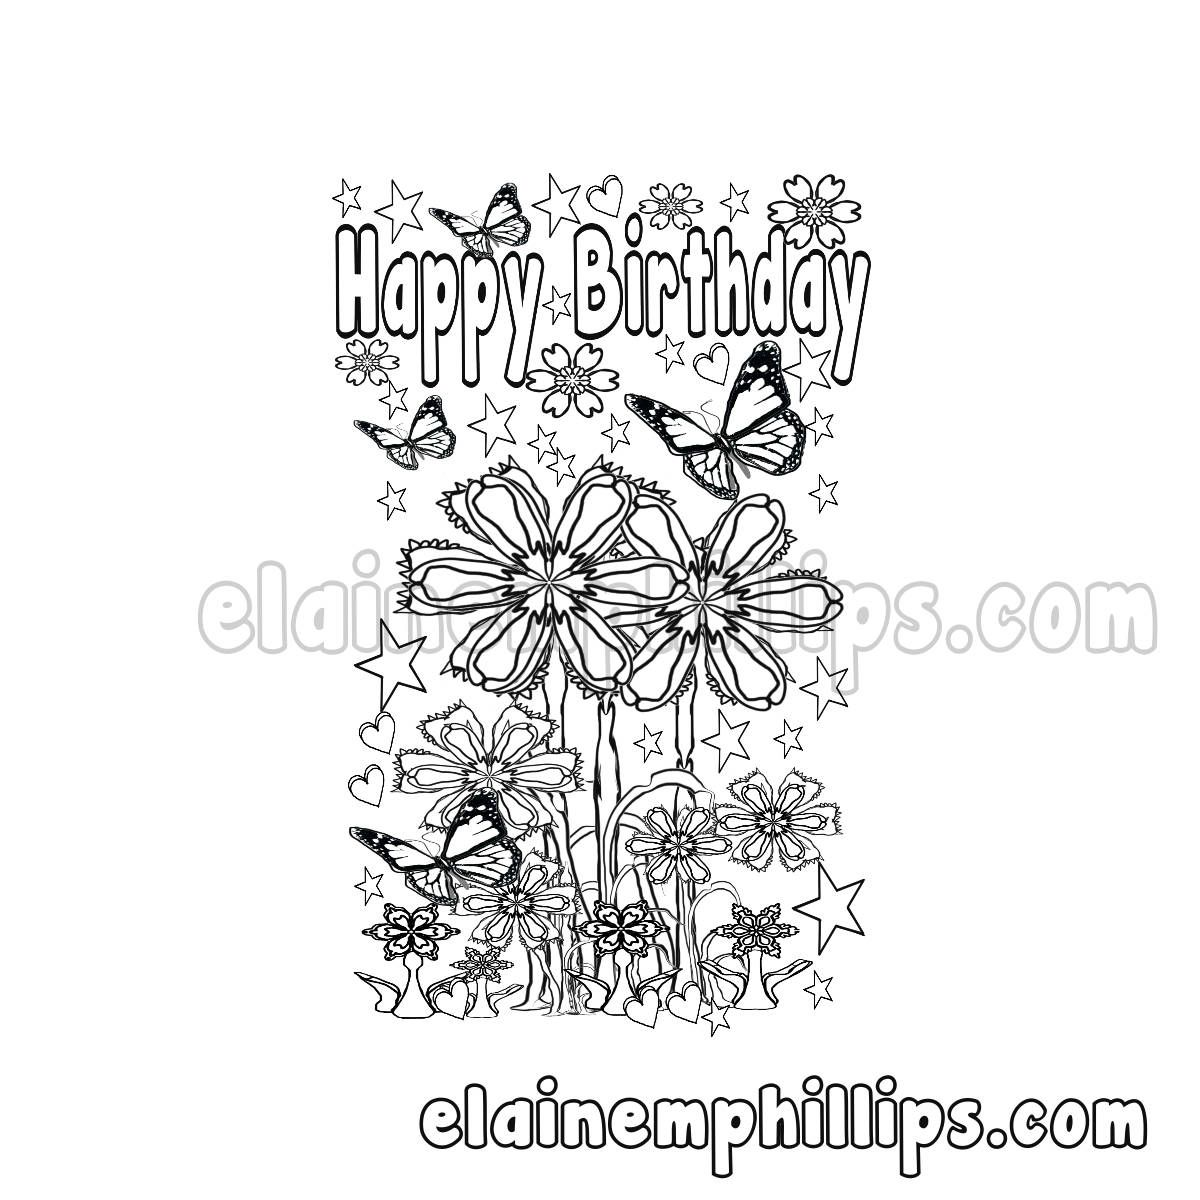 - Happy Birthday Printable Card , Color Me A Birthday Card Make That